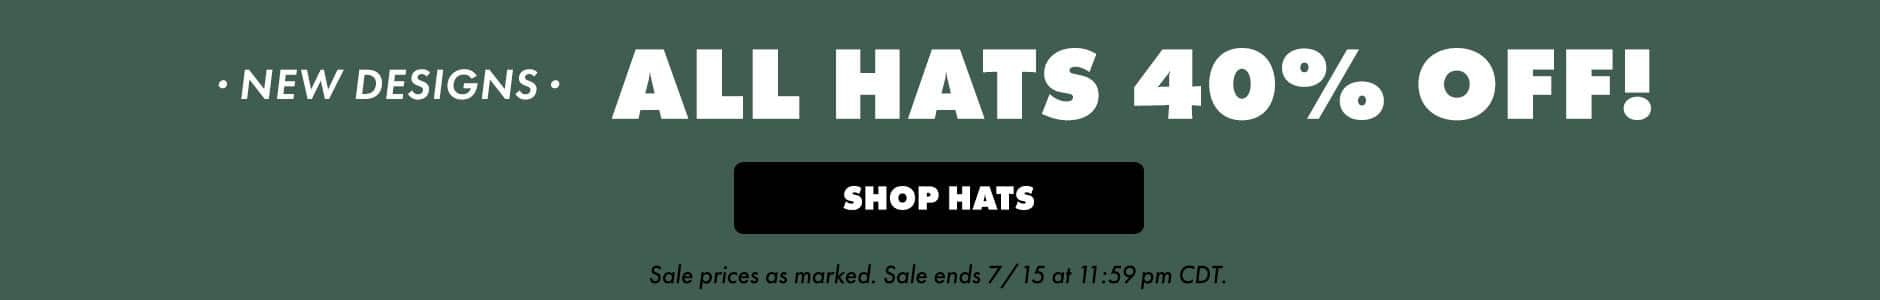 All hats 40% off!